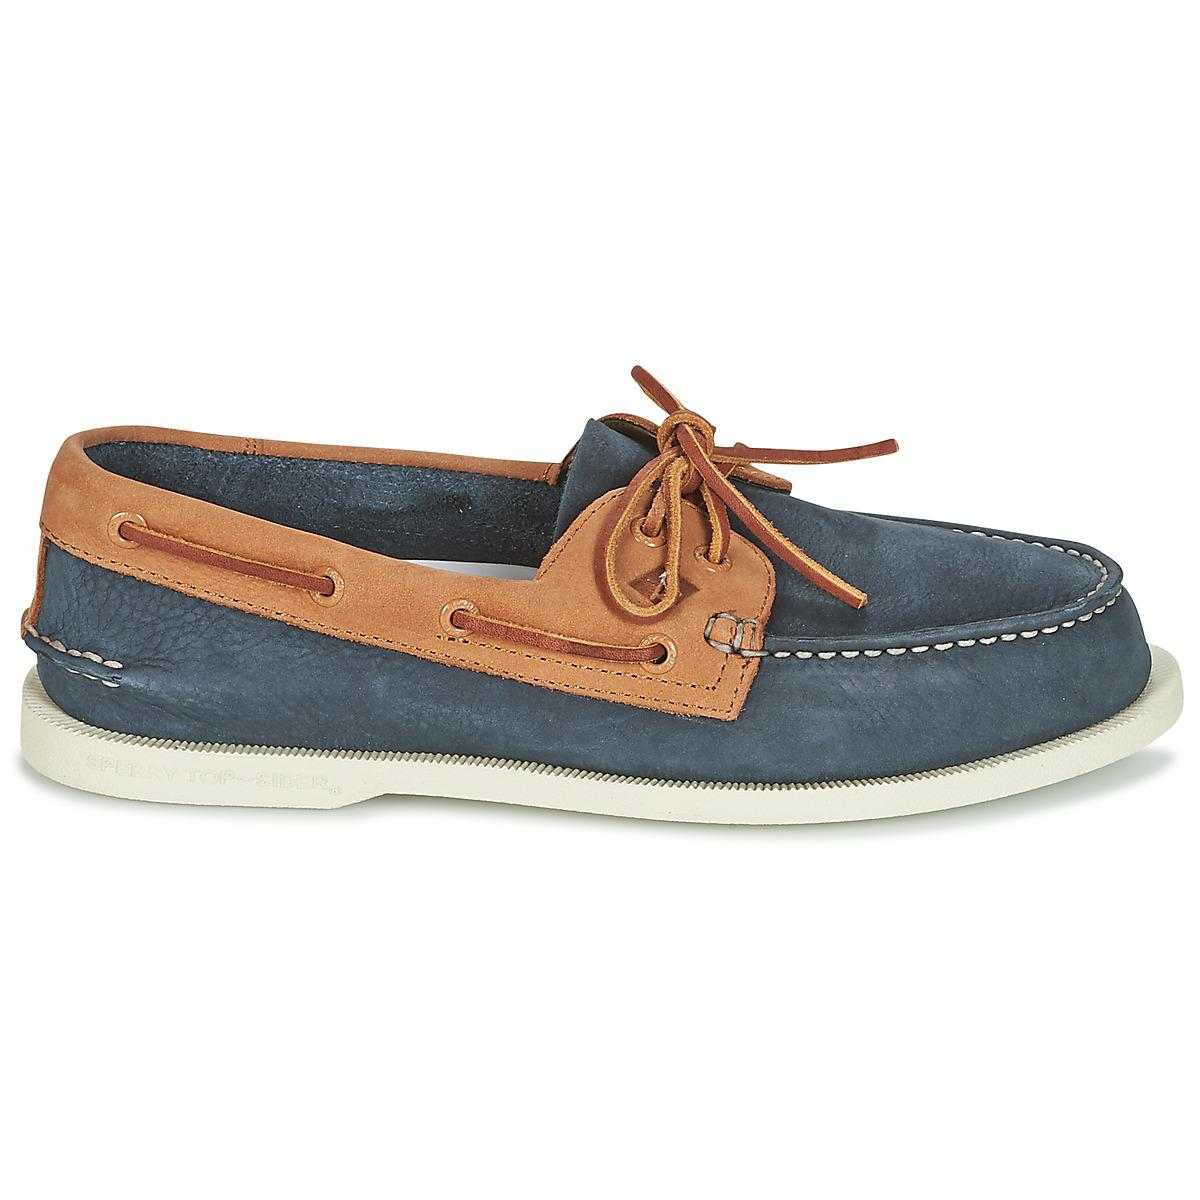 Sperry Top-Sider - A o 2-eye Washable Men s Boat Shoes In. View fullscreen 3d00306d10f